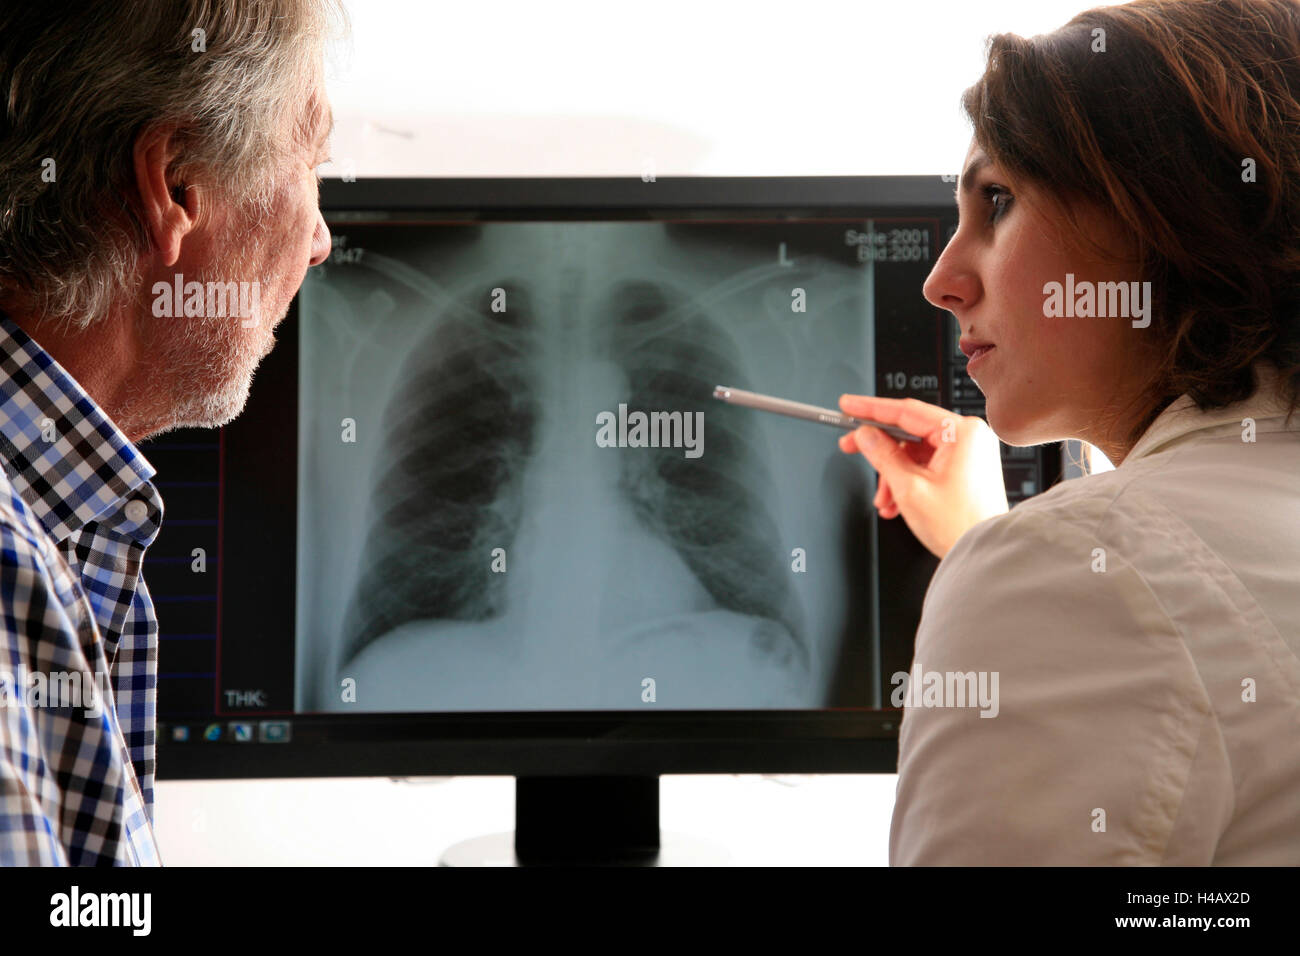 Doctor, patient, X-ray picture, lung, diagnosis, consultation - Stock Image